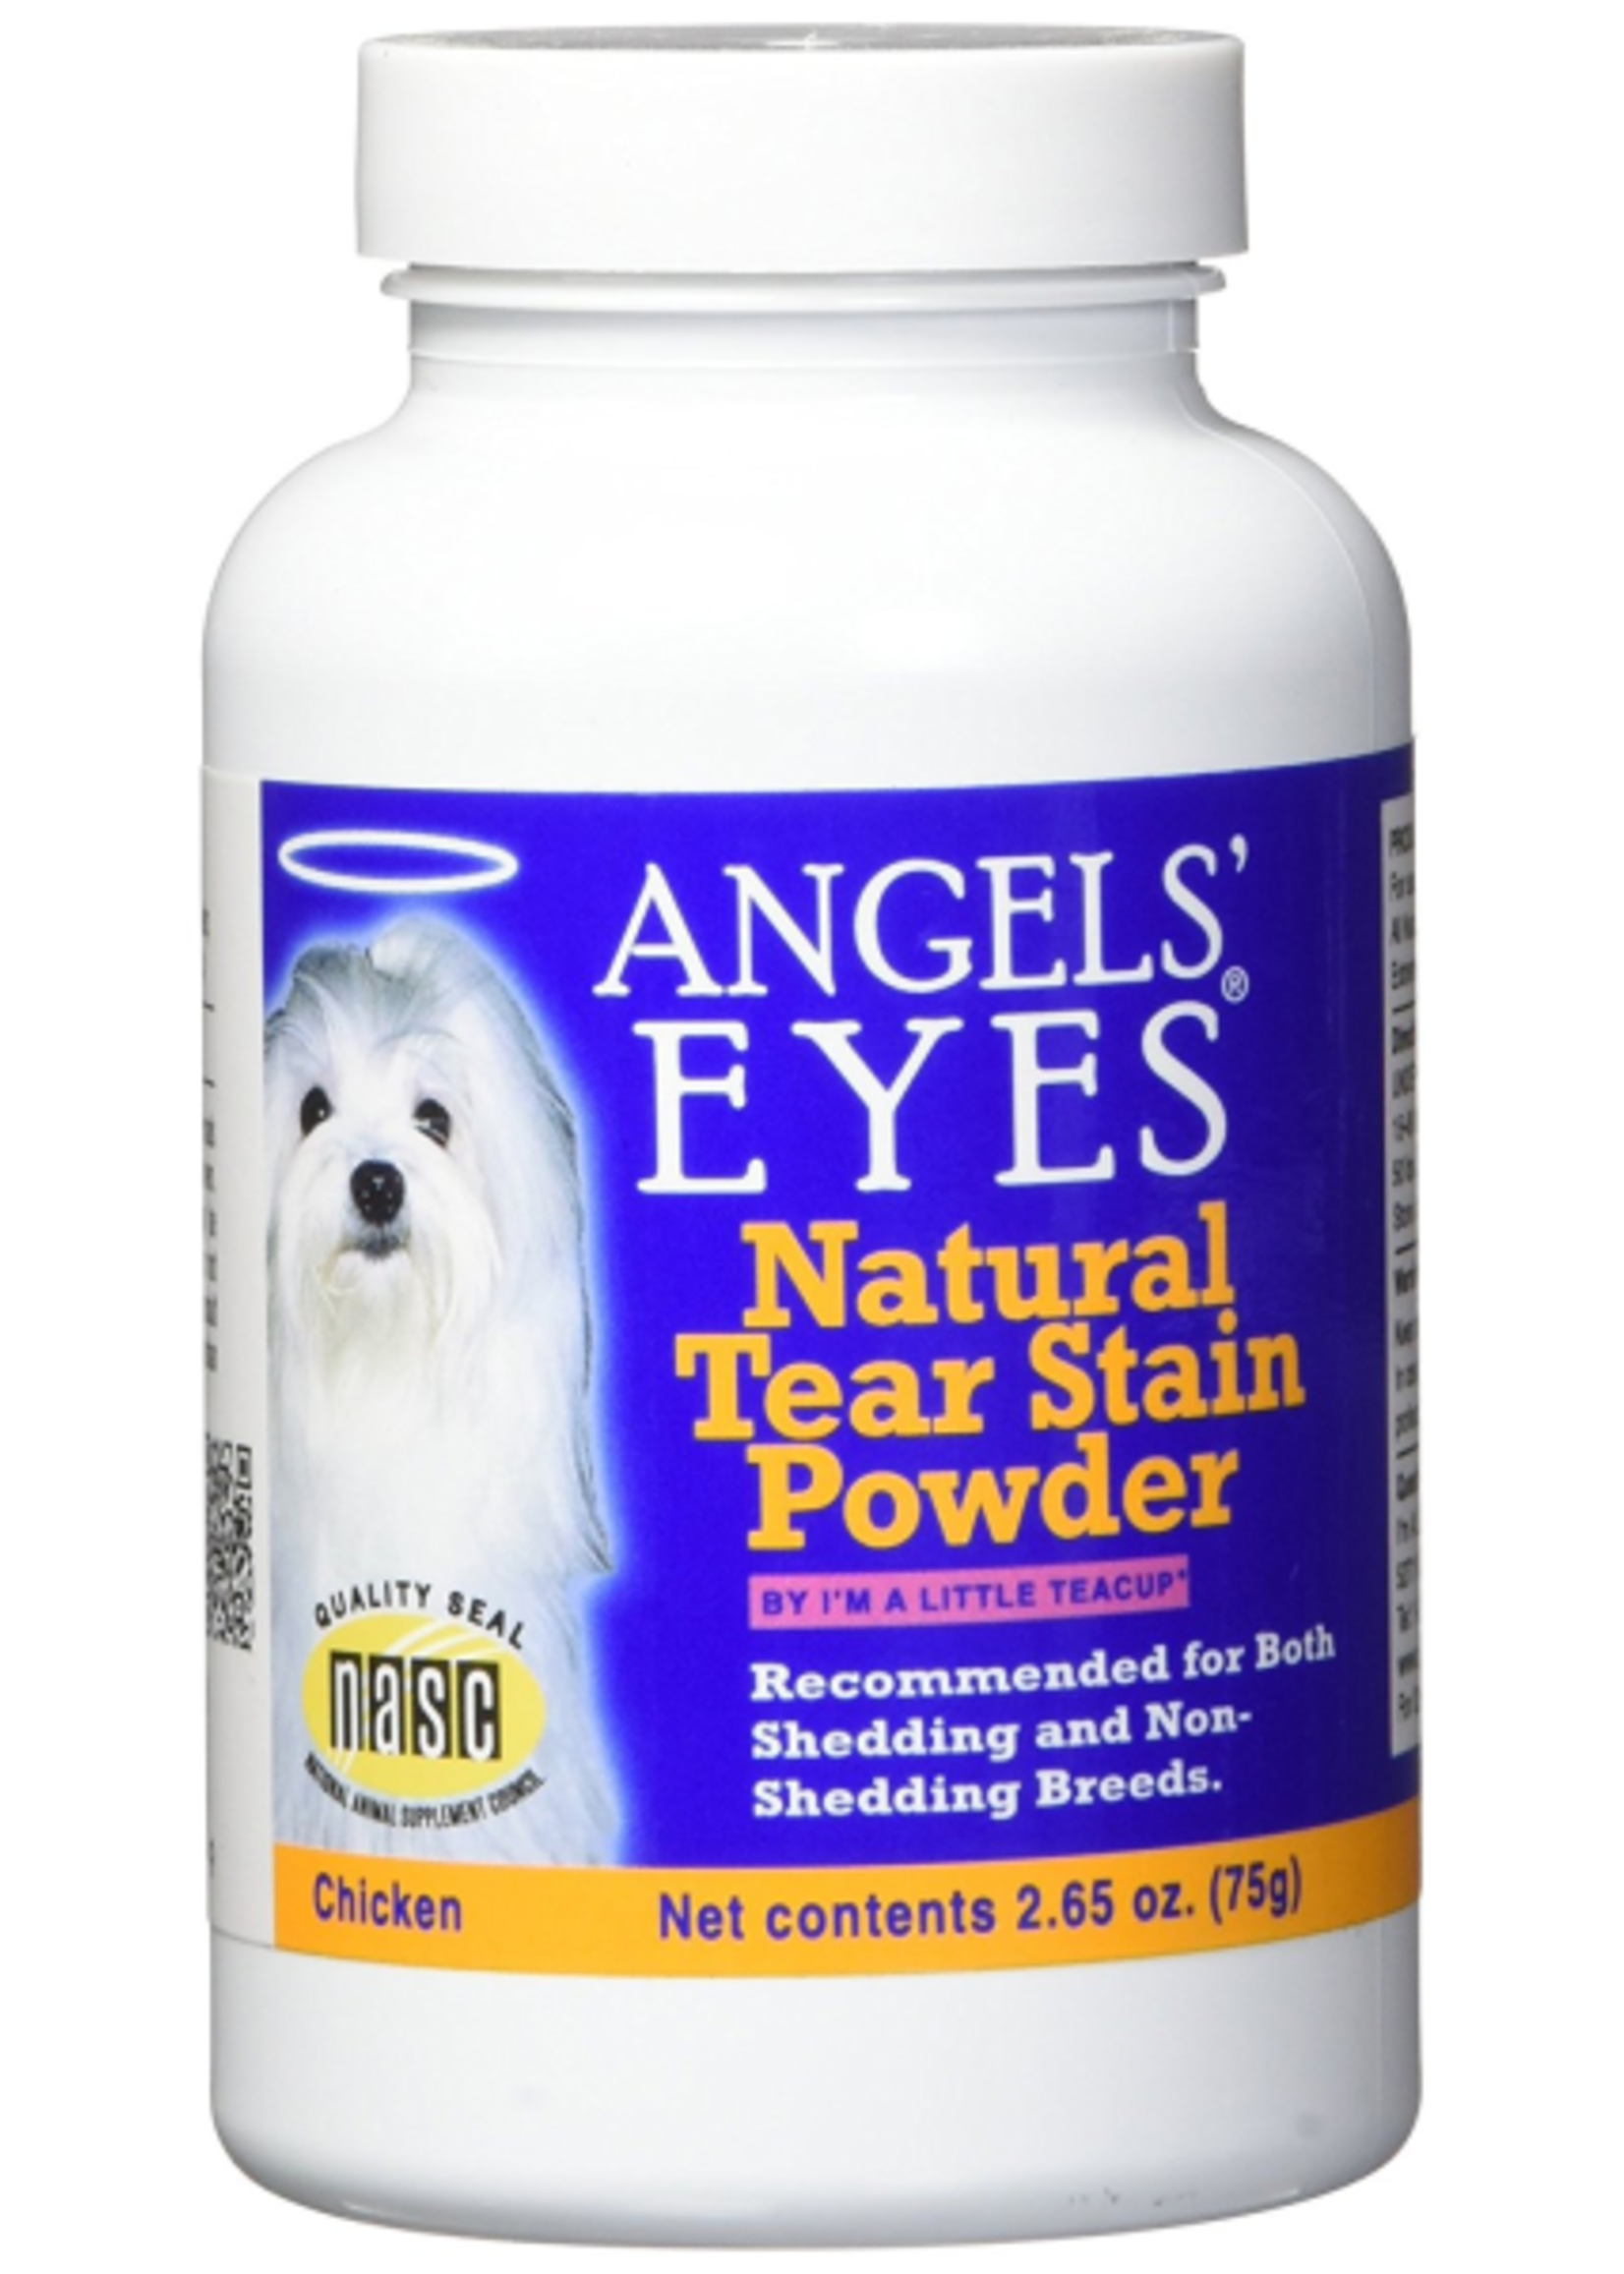 Angels Eyes Angels' Eyes Natural Tear Stain Powder Chicken 75 gm